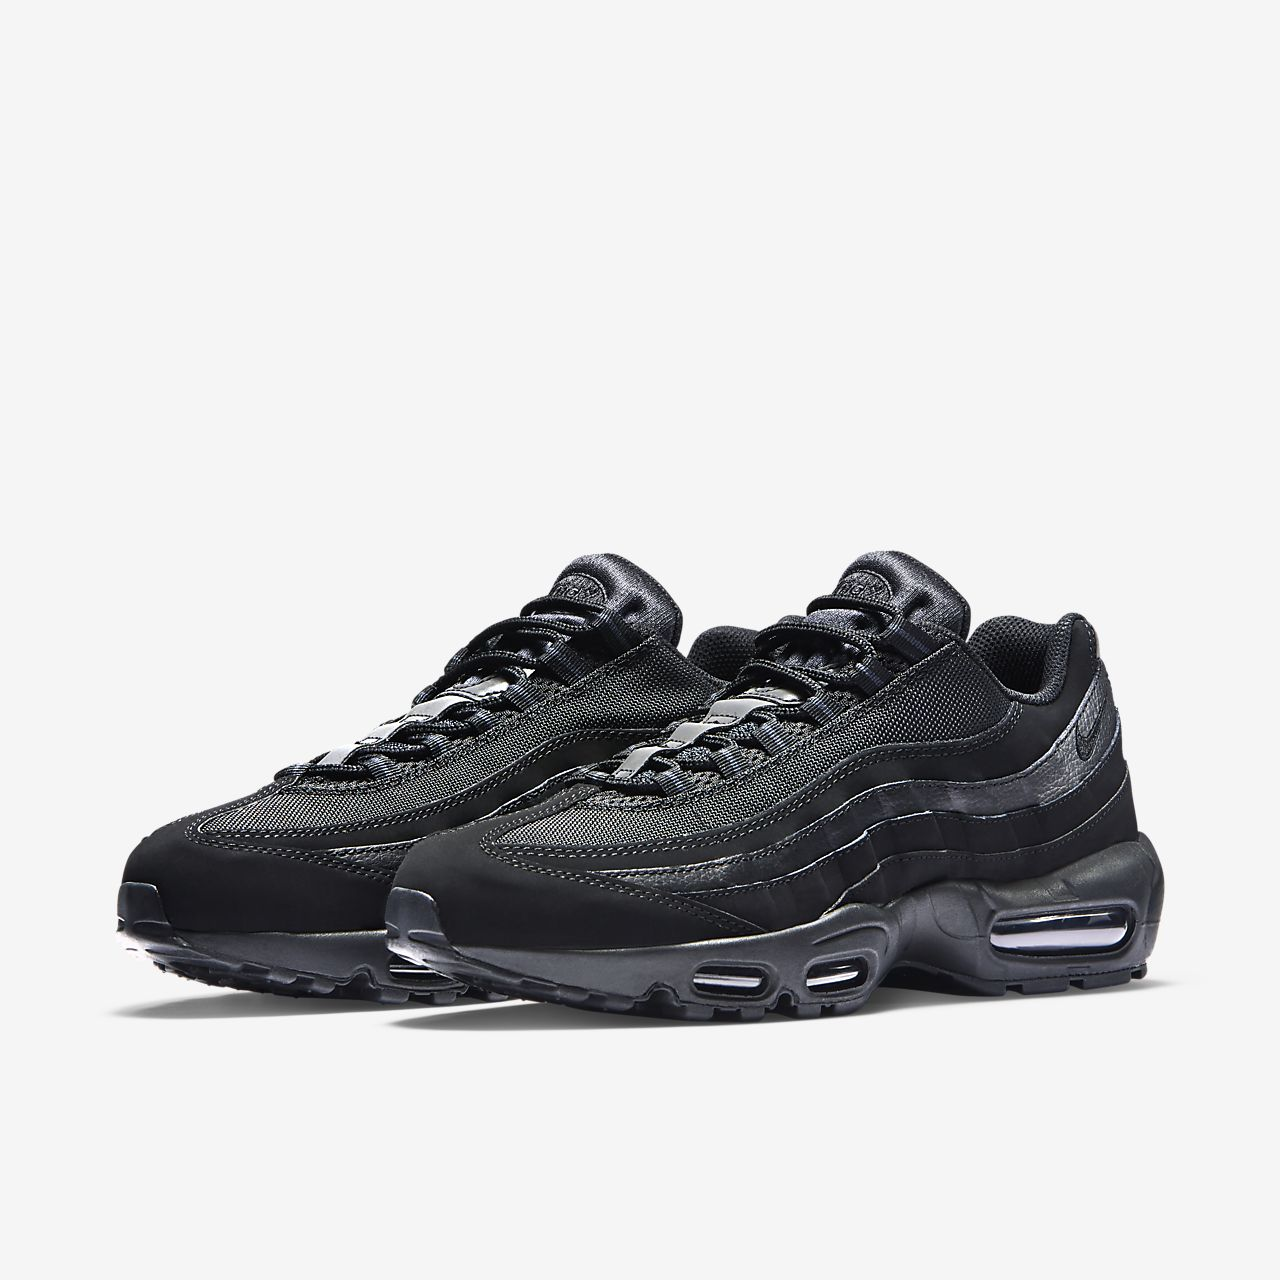 9aeec954c58 Nike Air Max 95 Men s Shoe. Nike.com GB